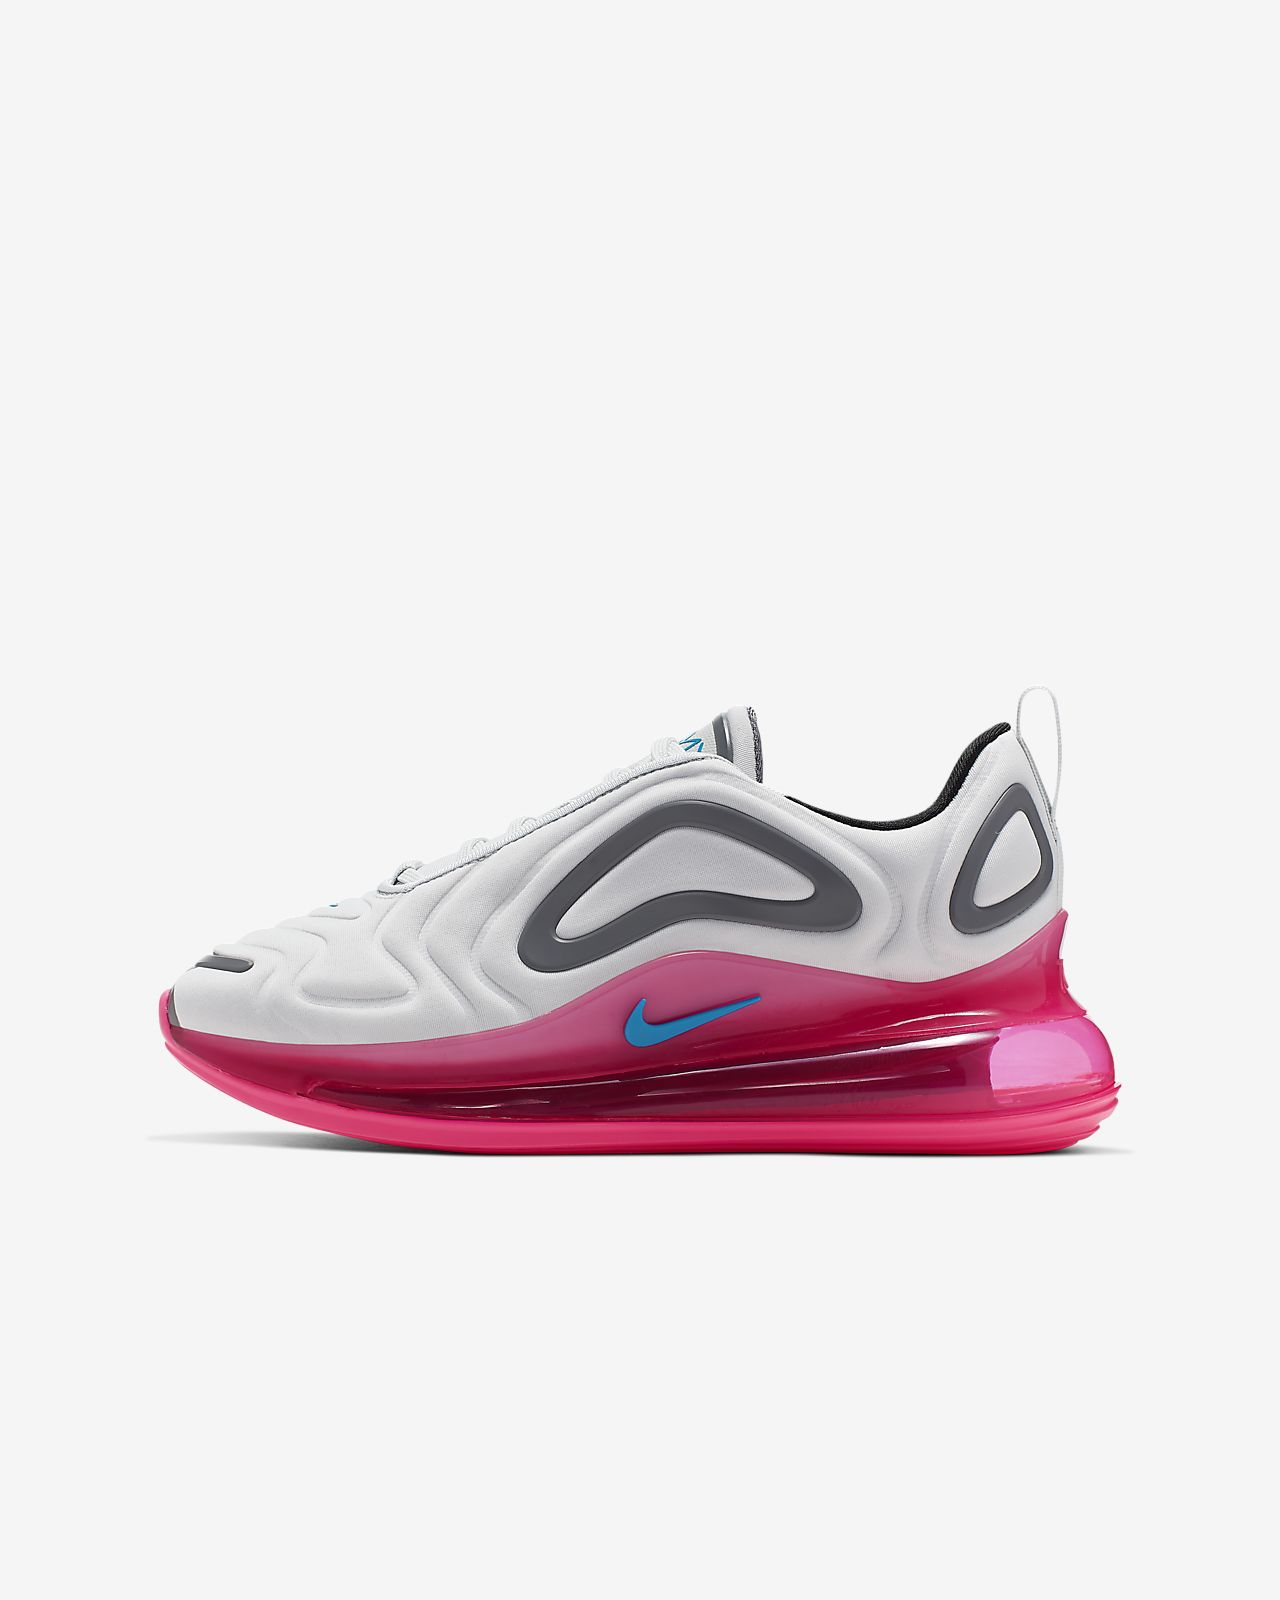 Nike Air Max 720 Game Change Little/Big Kids' Shoe